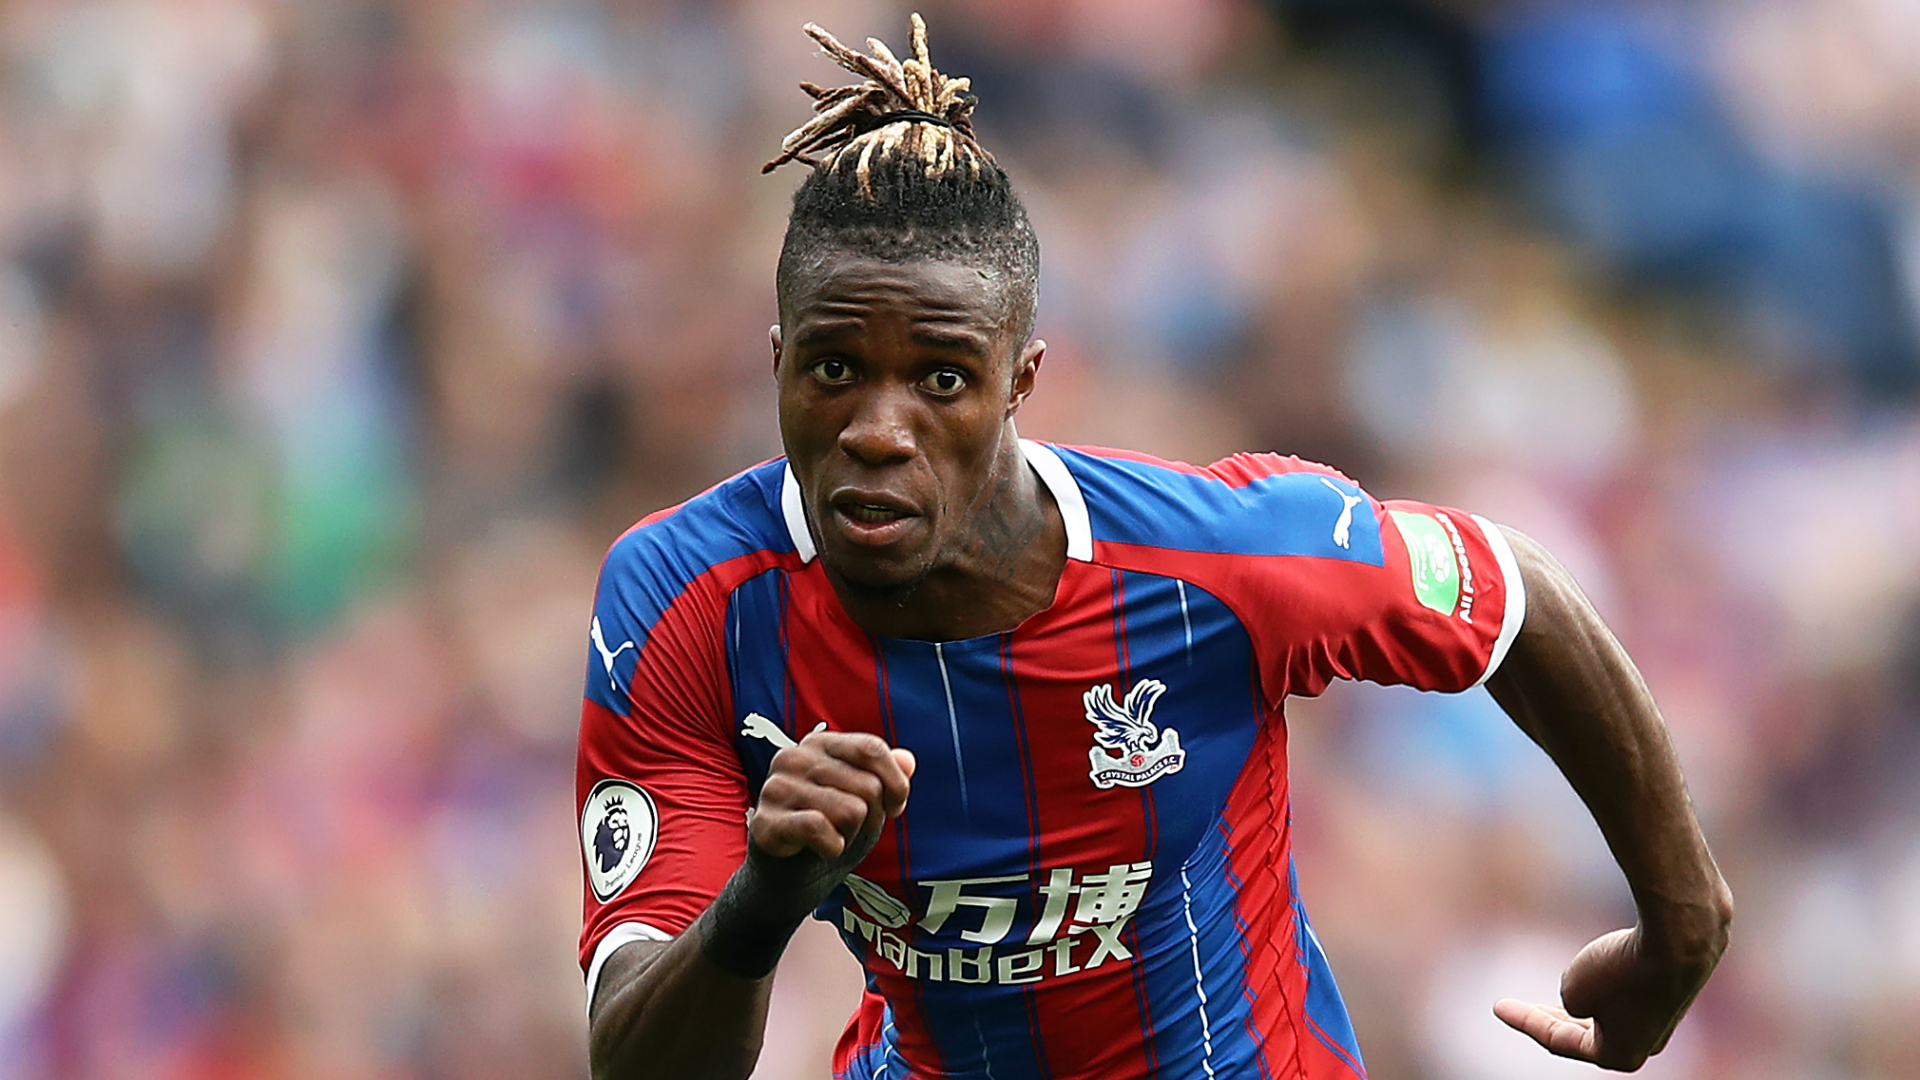 """Roy Hodgson has commended Wilfried Zaha's """"mature"""" response to not being sold by Crystal Palace, which was a possibility."""